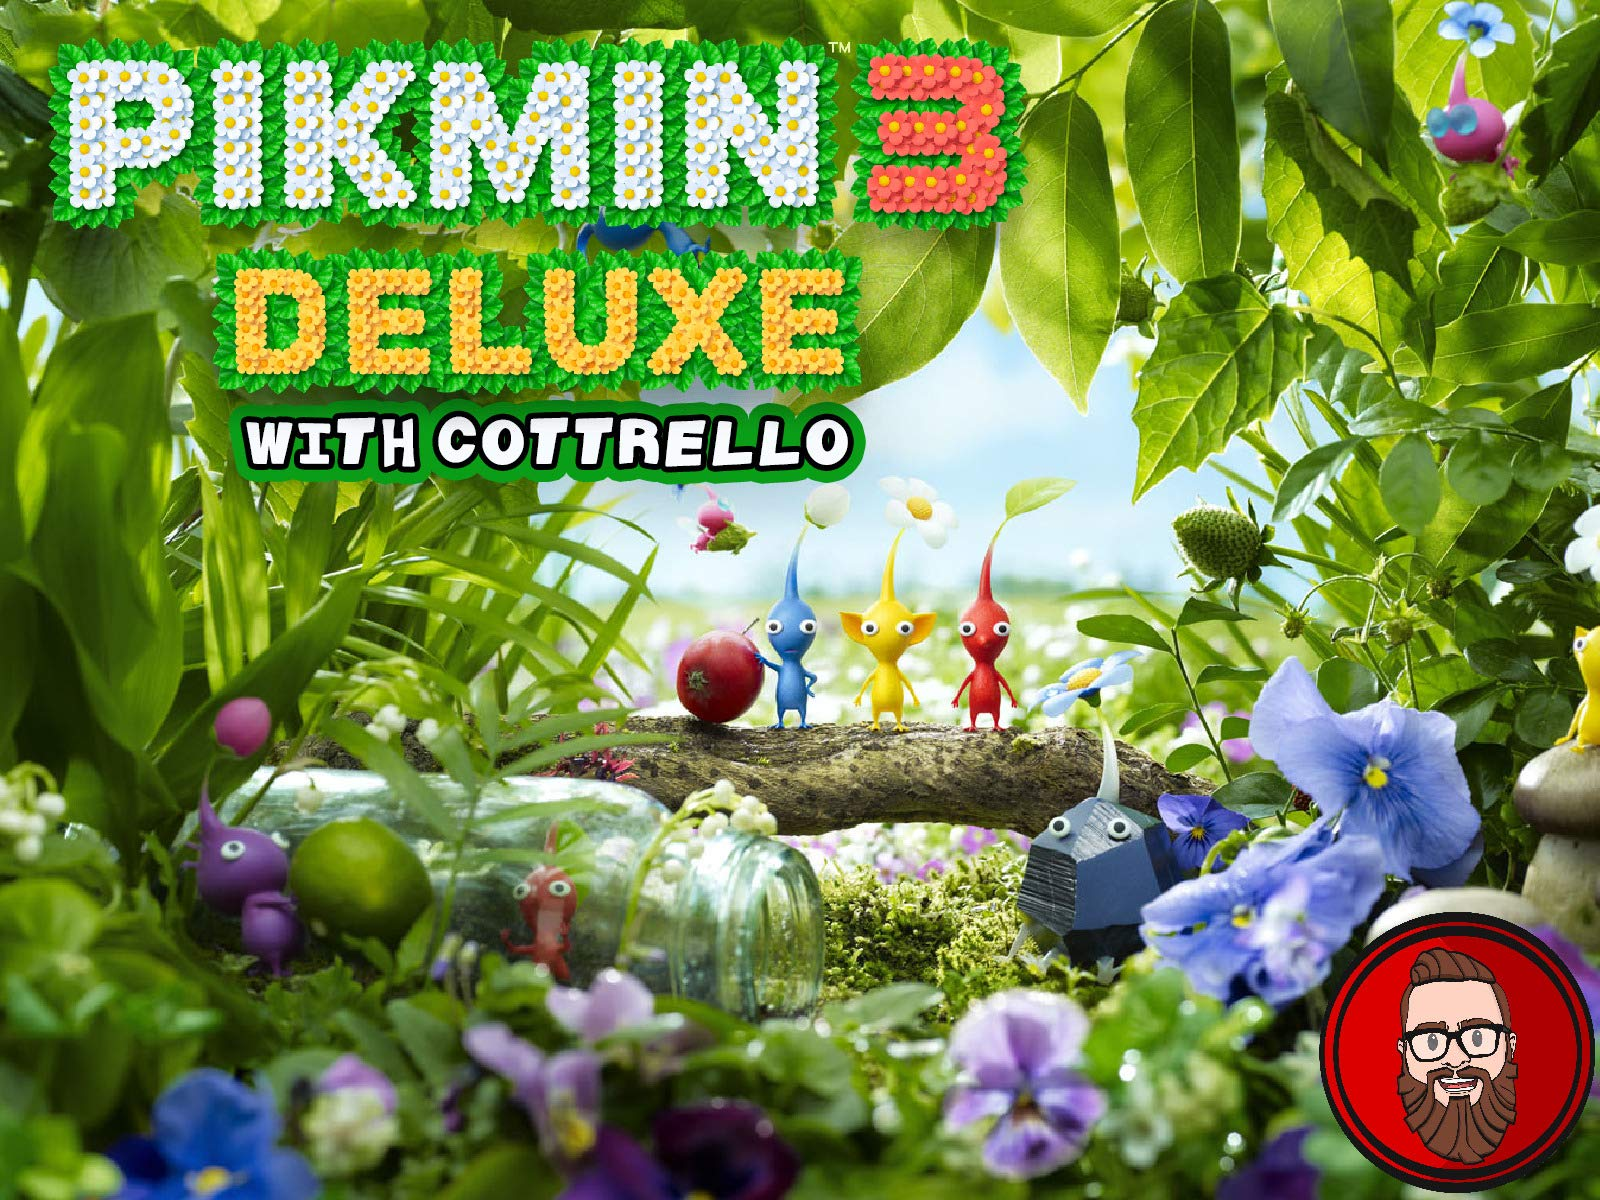 Clip: Pikmin 3 Deluxe with Cottrello - Season 1